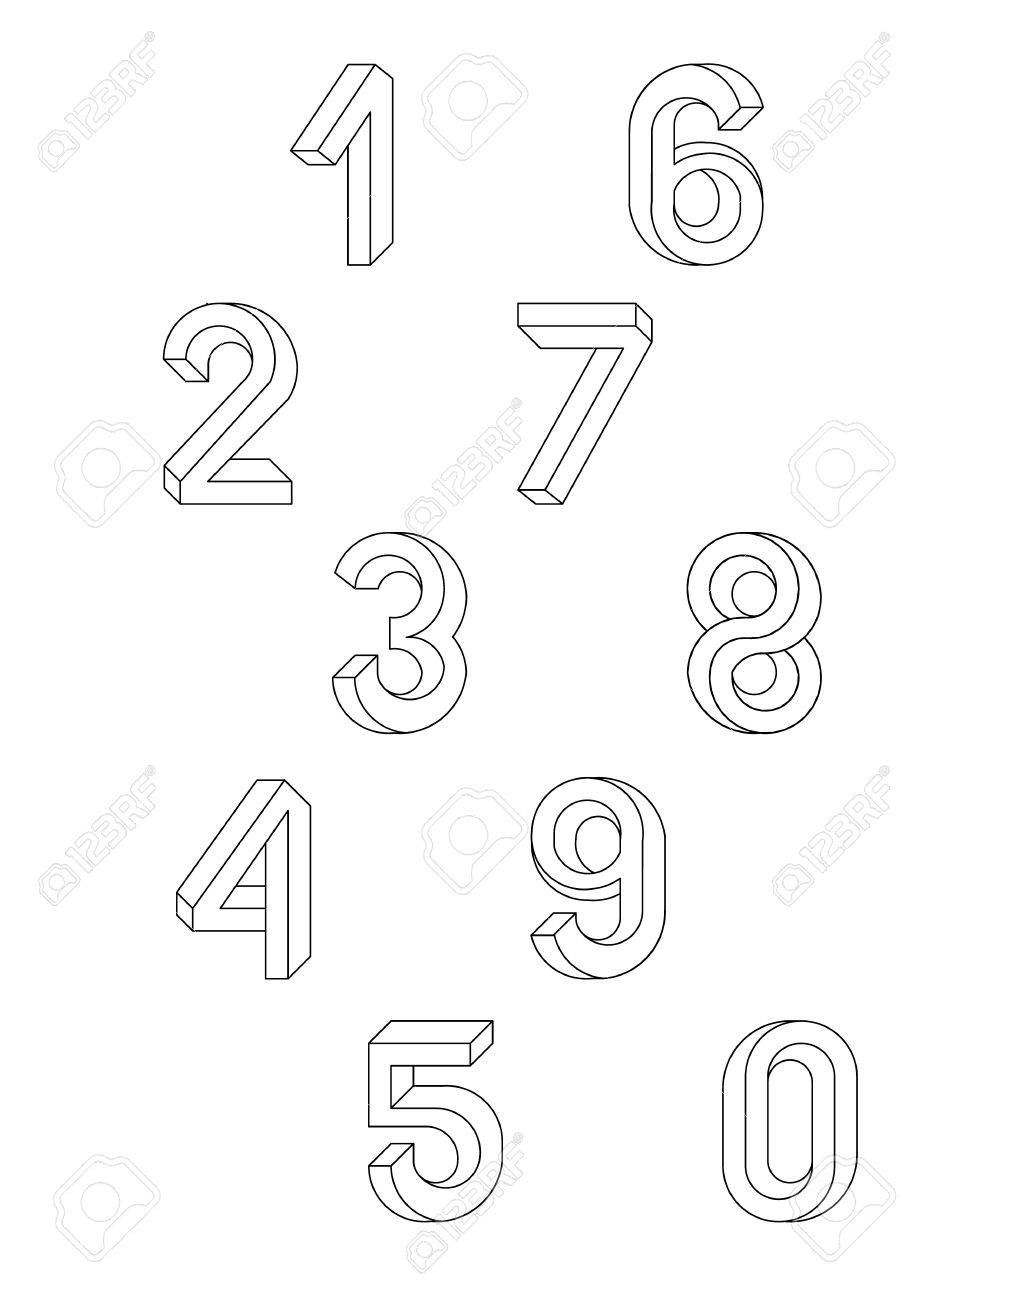 Impossible Geometry numbers  Set of vector numbers constructed